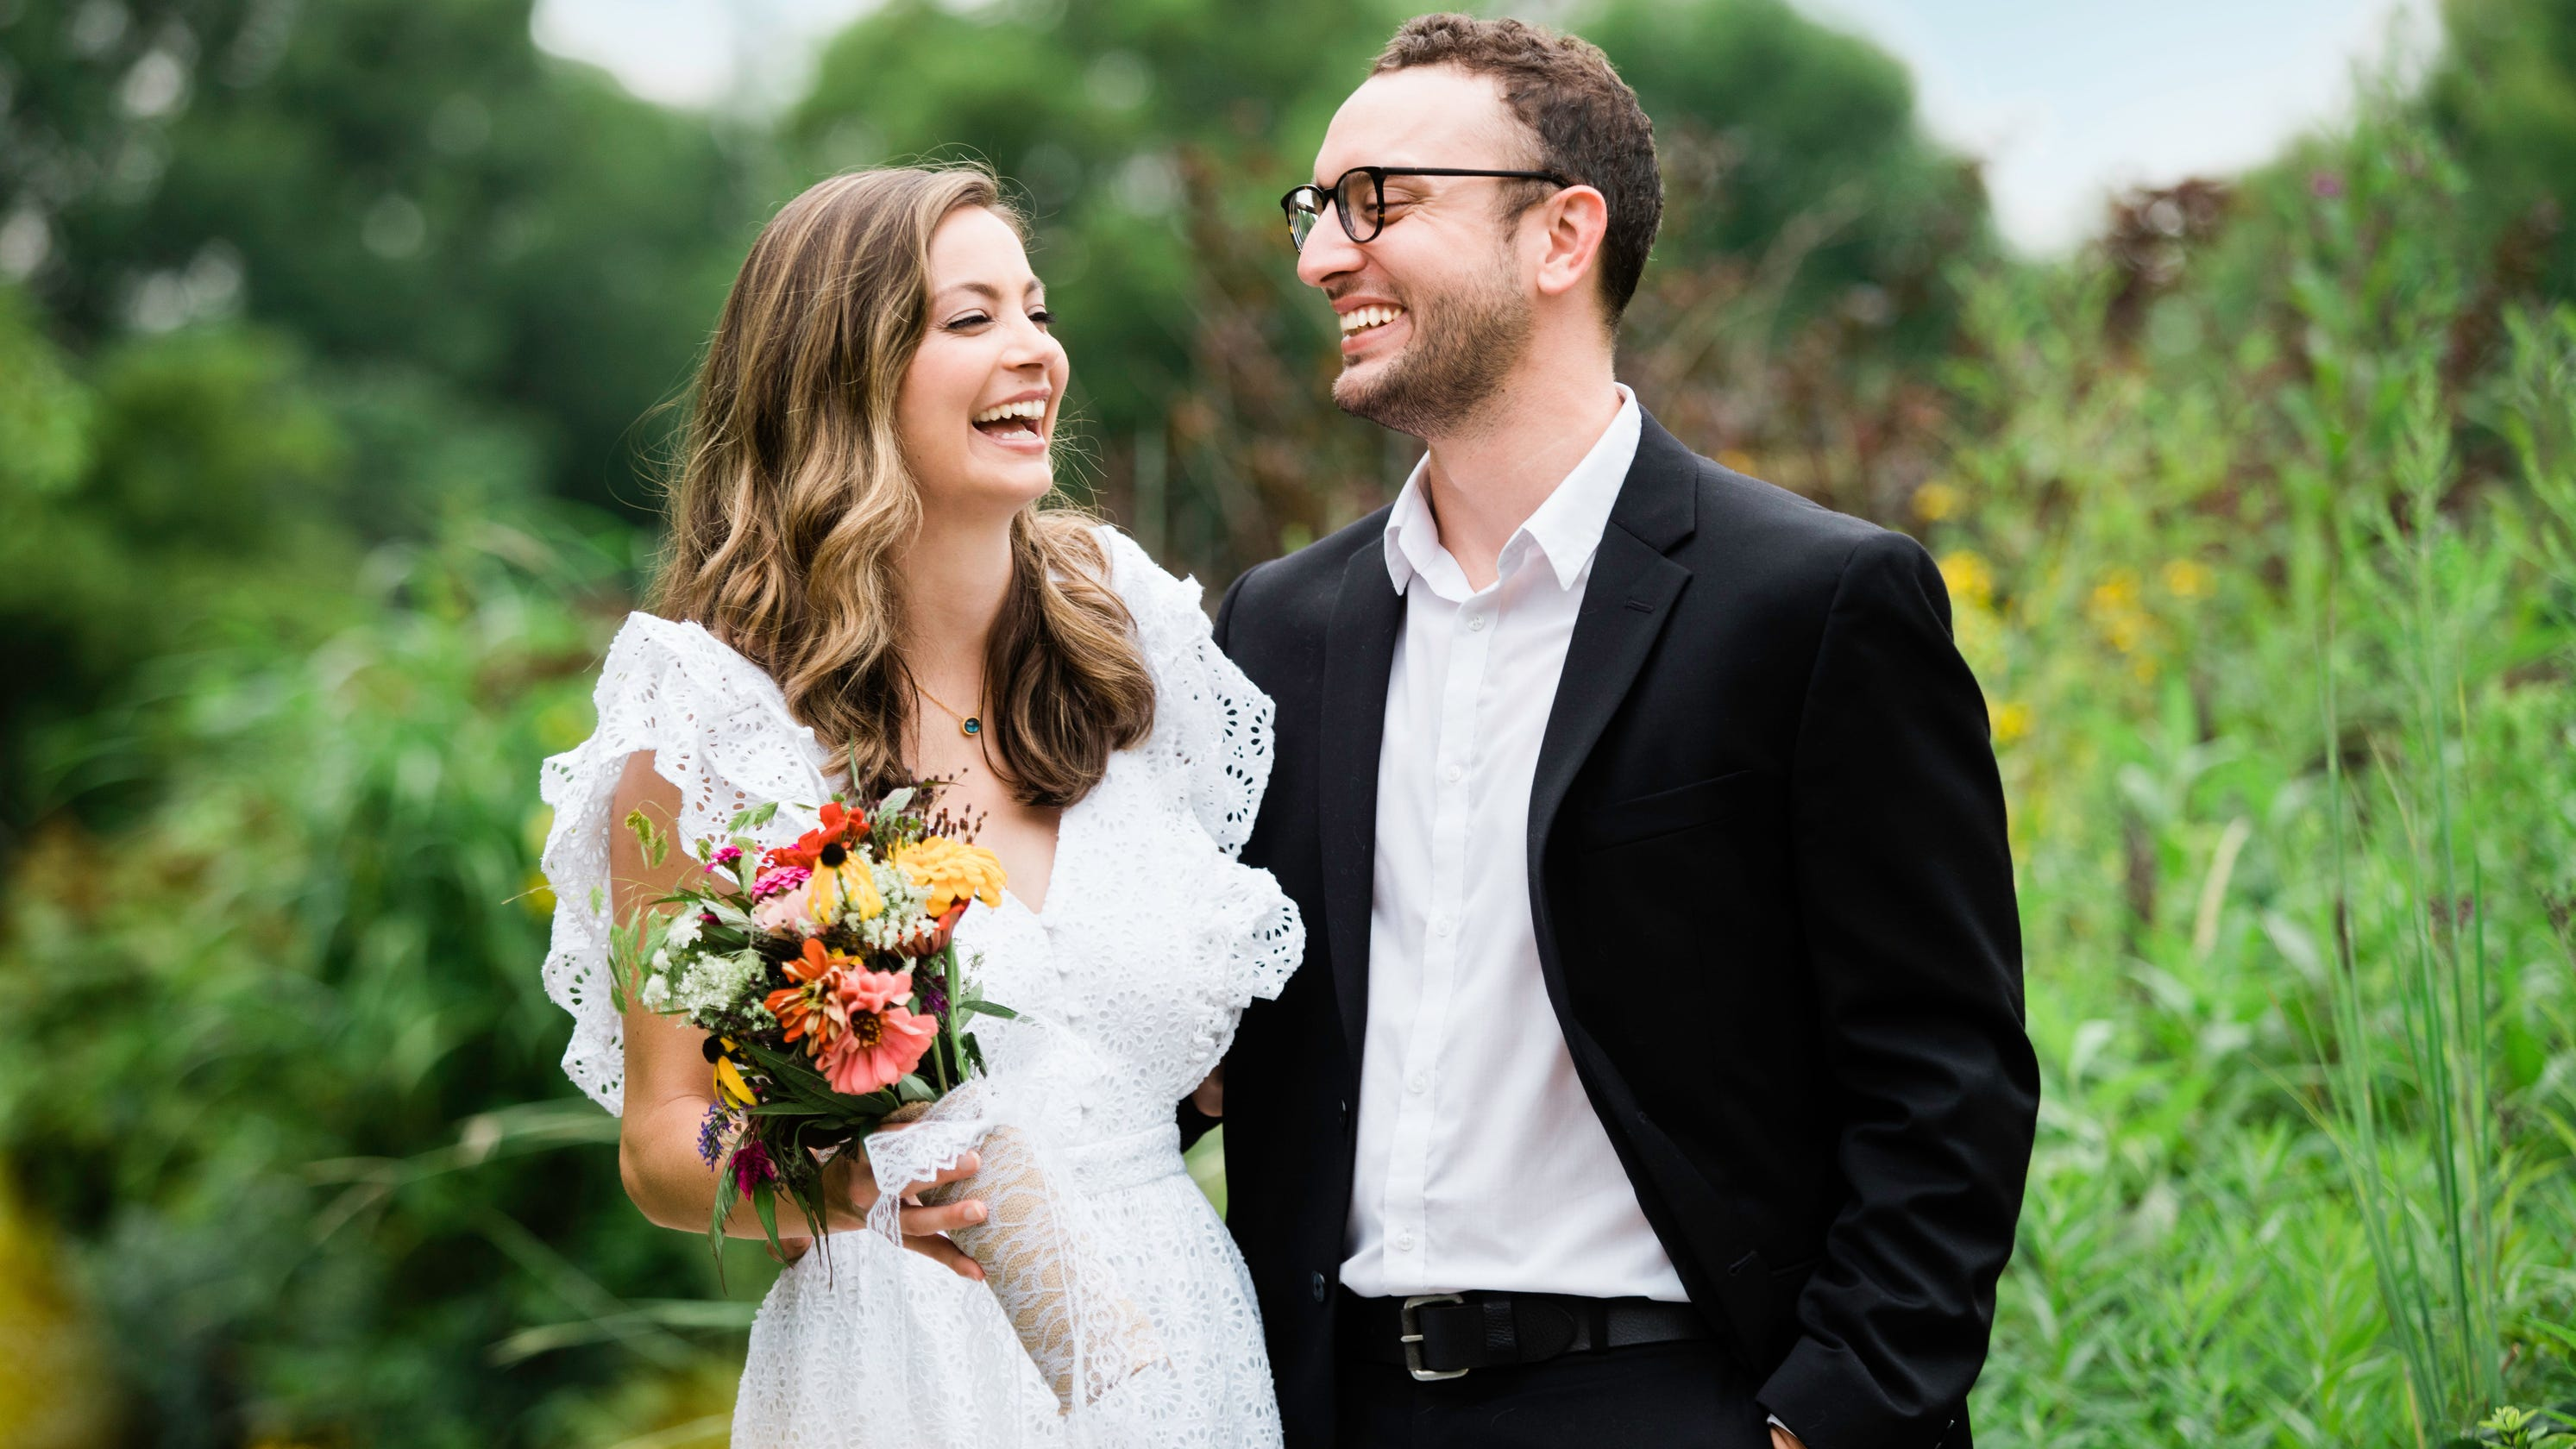 'Getting the in-sickness part out of the way': WLWT anchor and husband marry amid cancer diagnosis